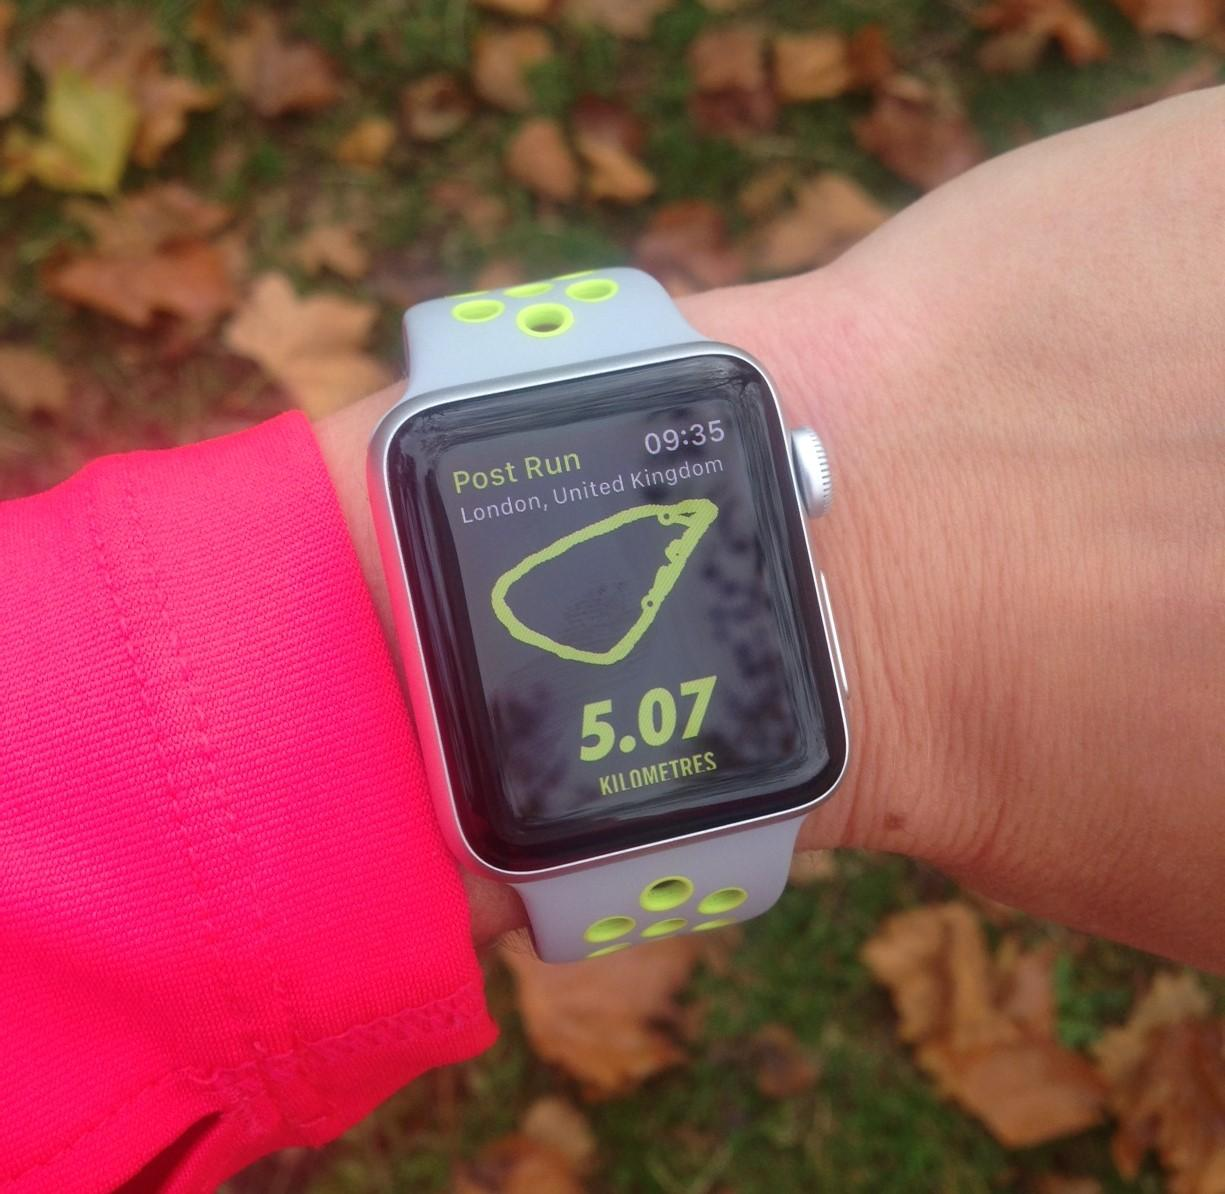 Testing out the watch at a recent Parkrun